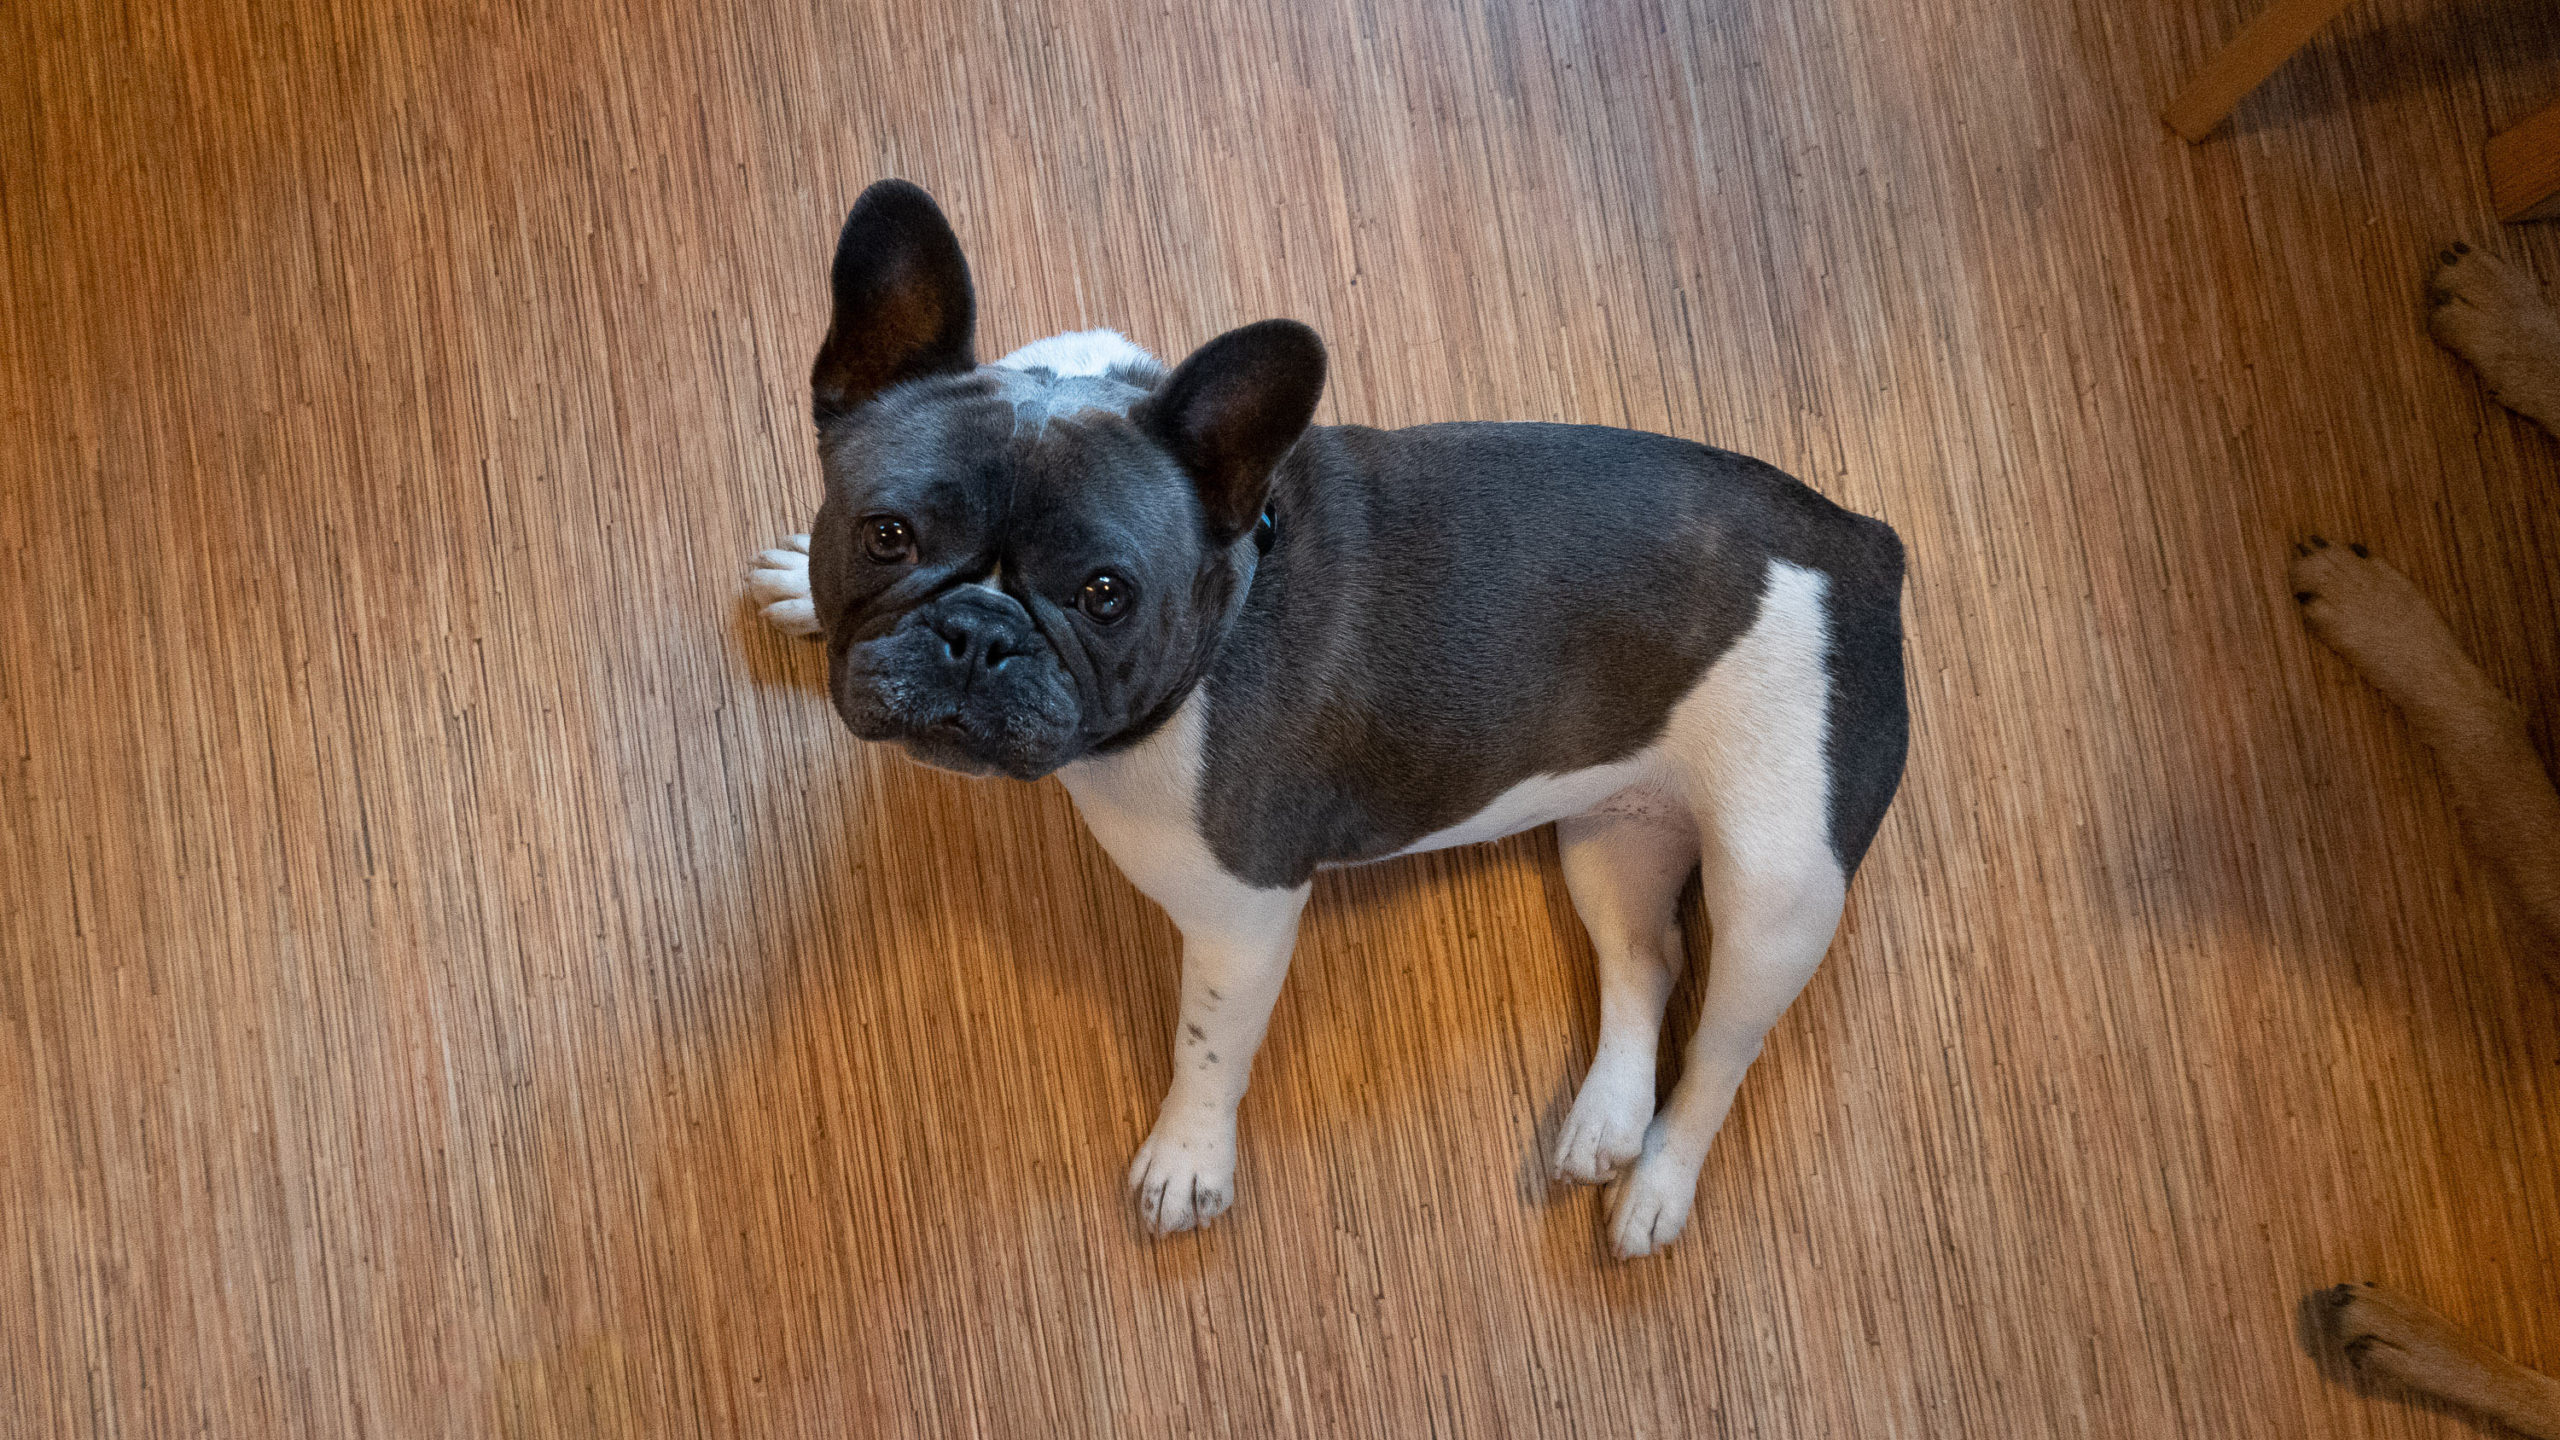 A french bulldog looks up from vinyl flooring with a bamboo grain